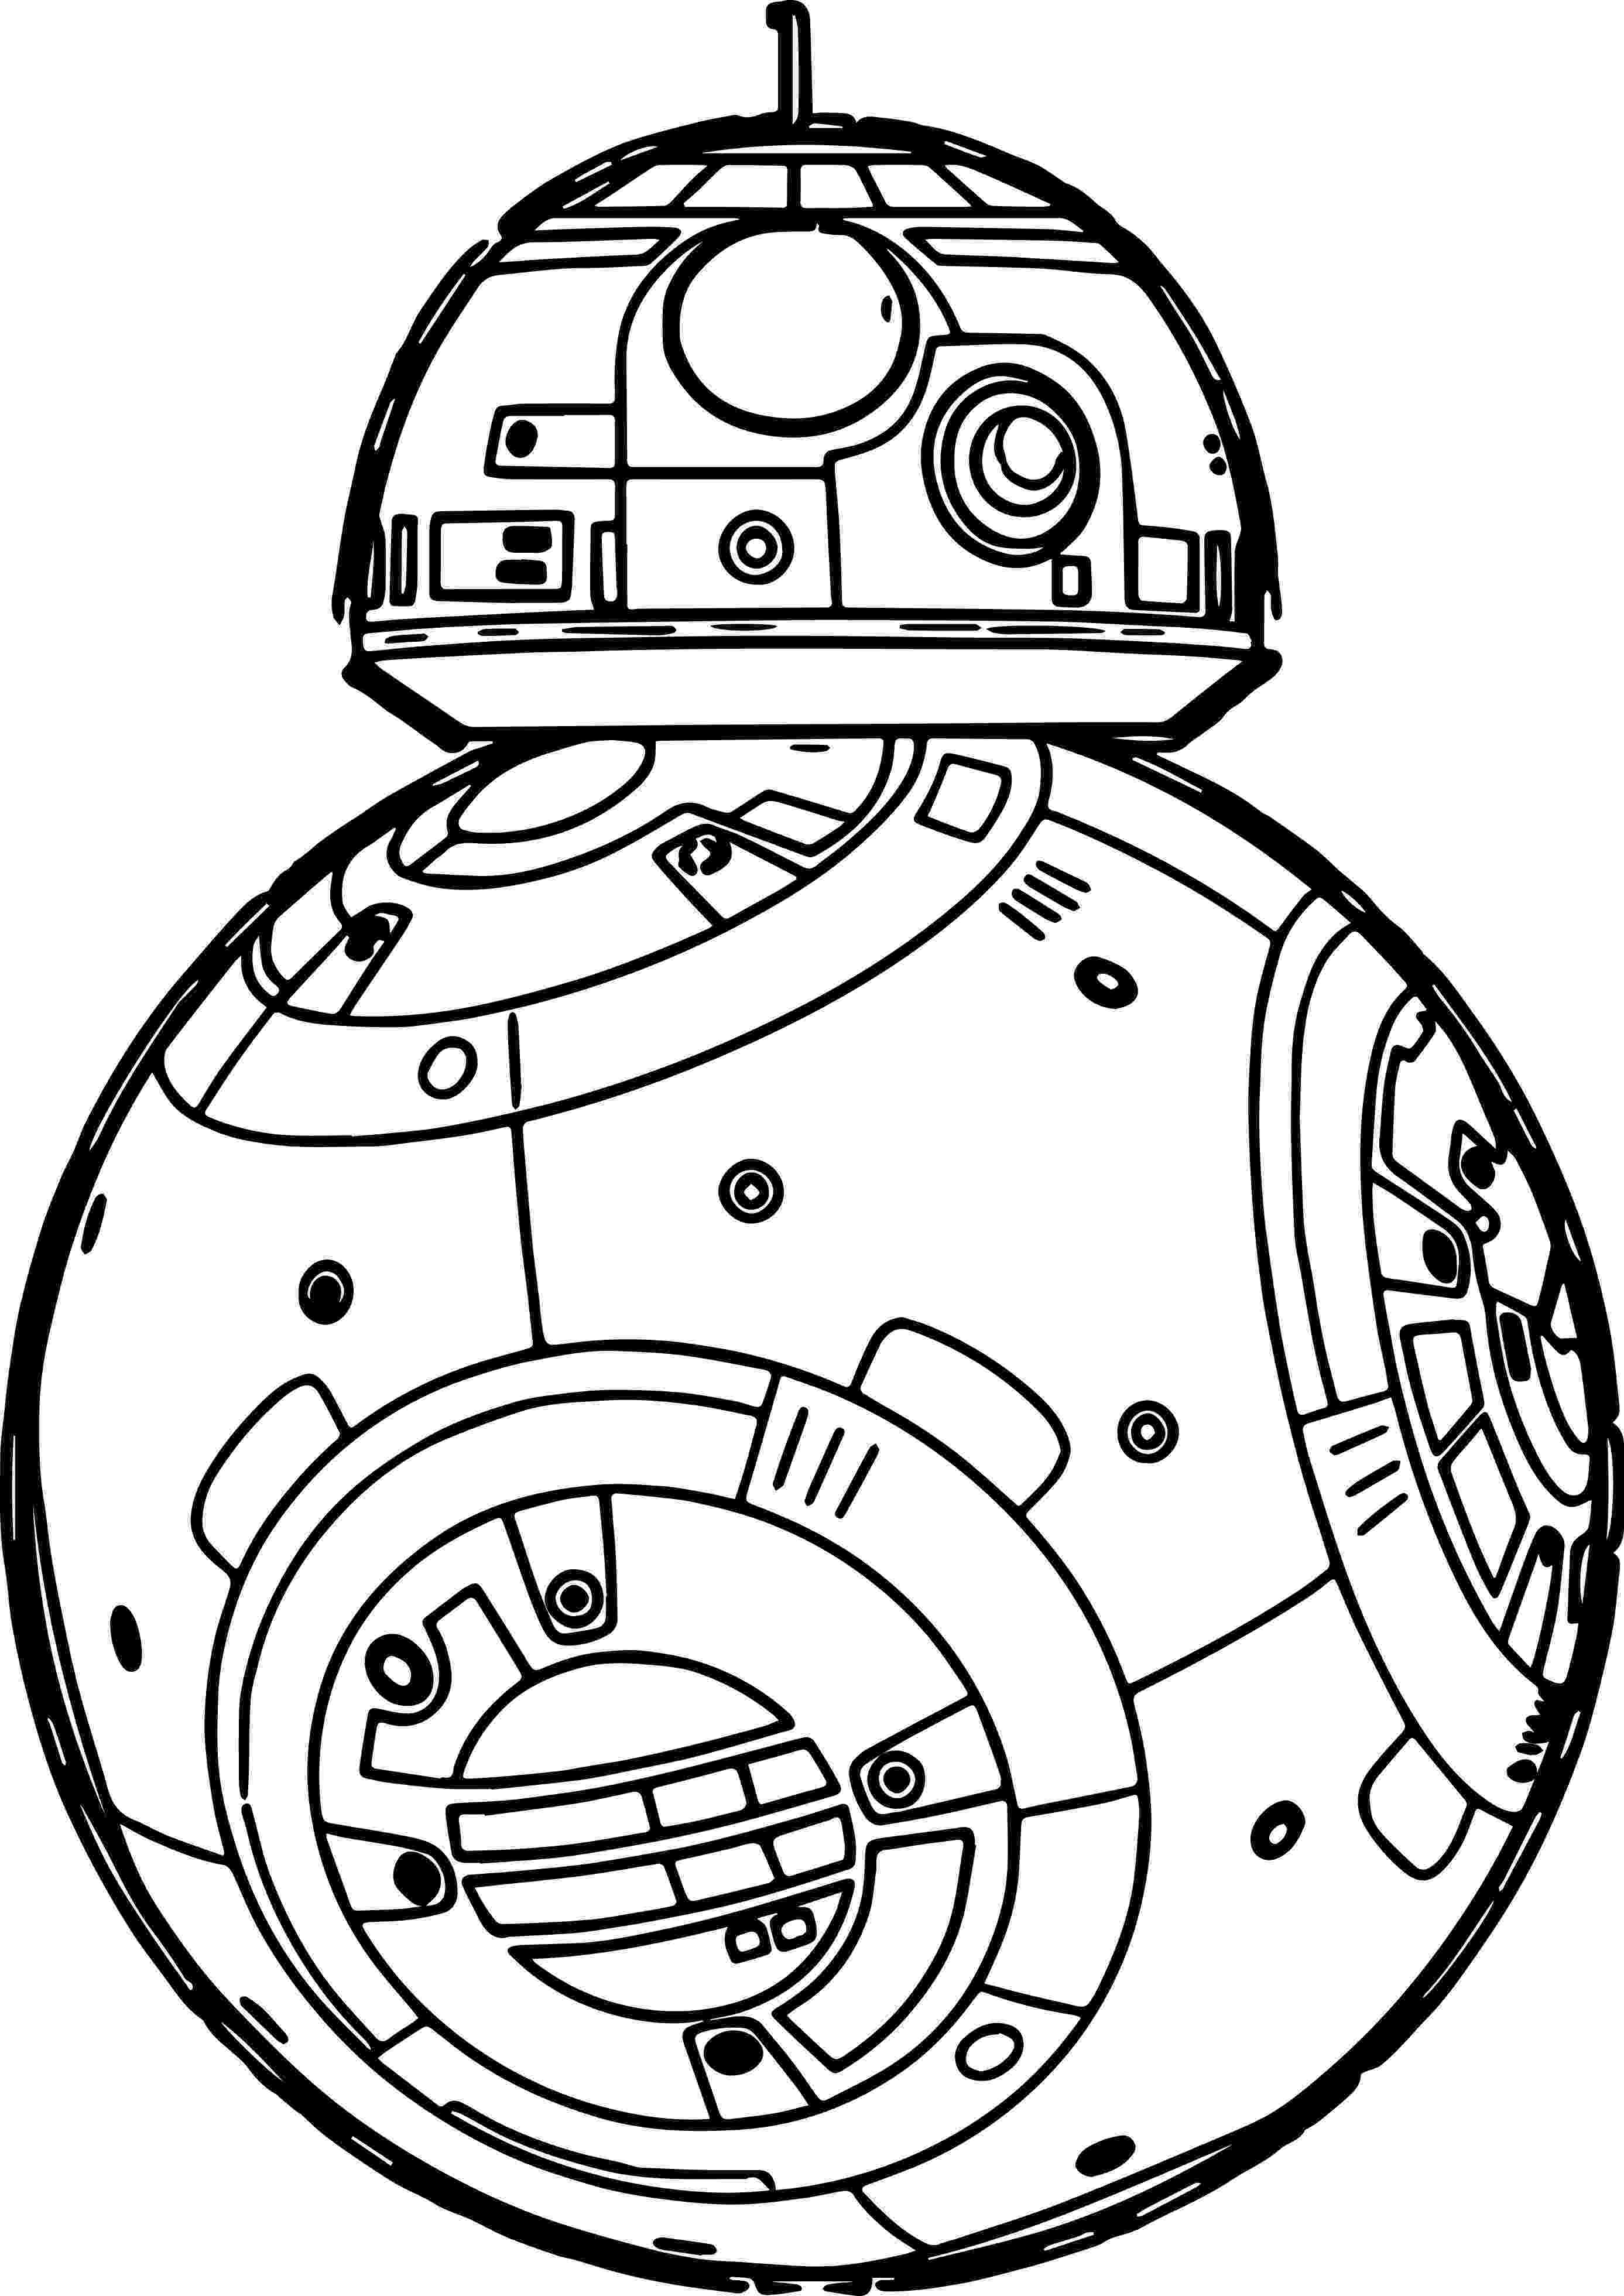 star wars colouring printables coloring pages of star wars star wars coloring pages printables star colouring wars